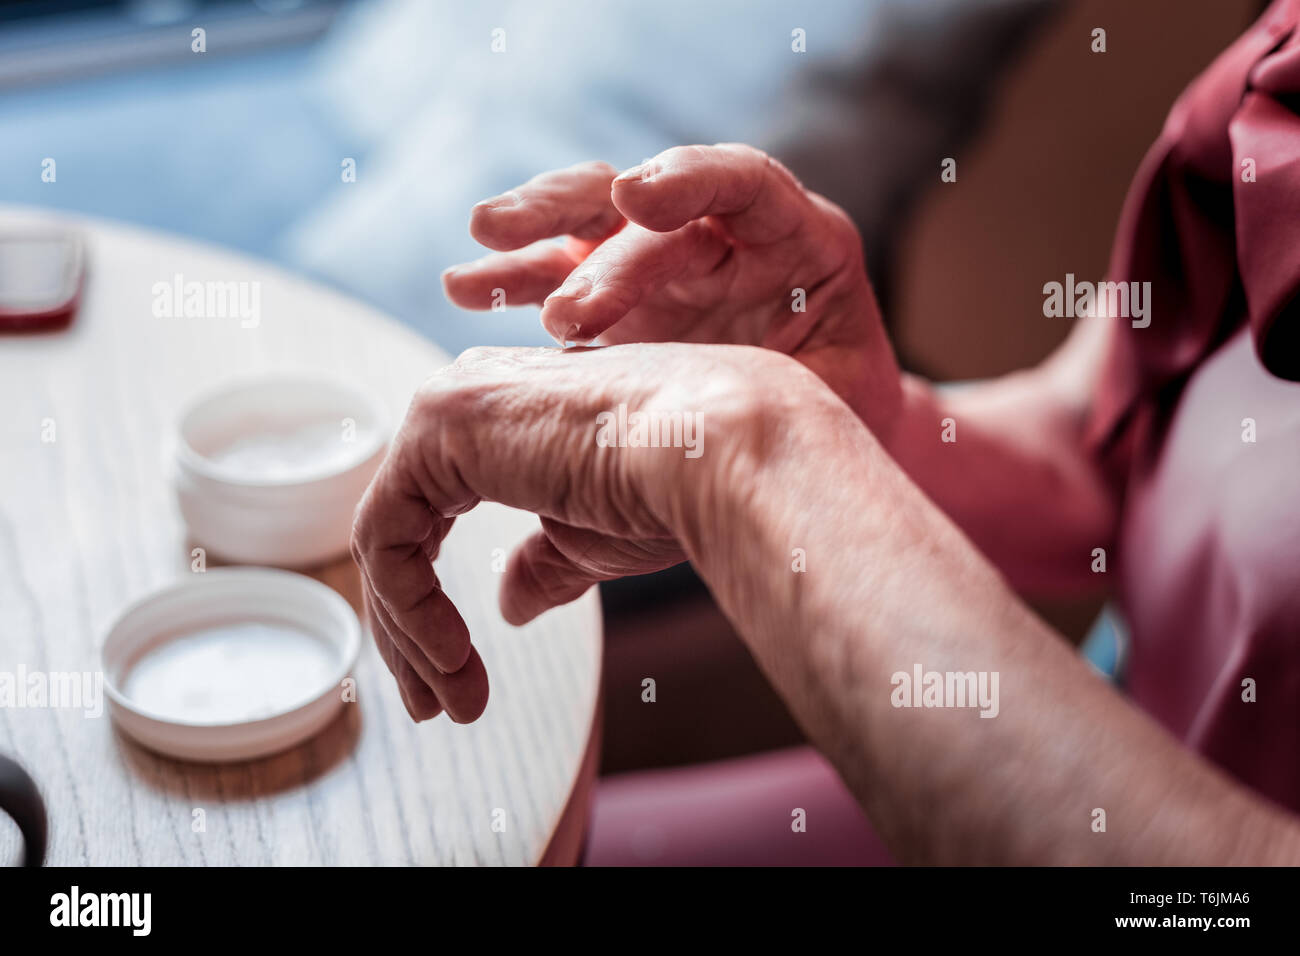 Gentle old woman wearing pink blouse and treating her hands - Stock Image